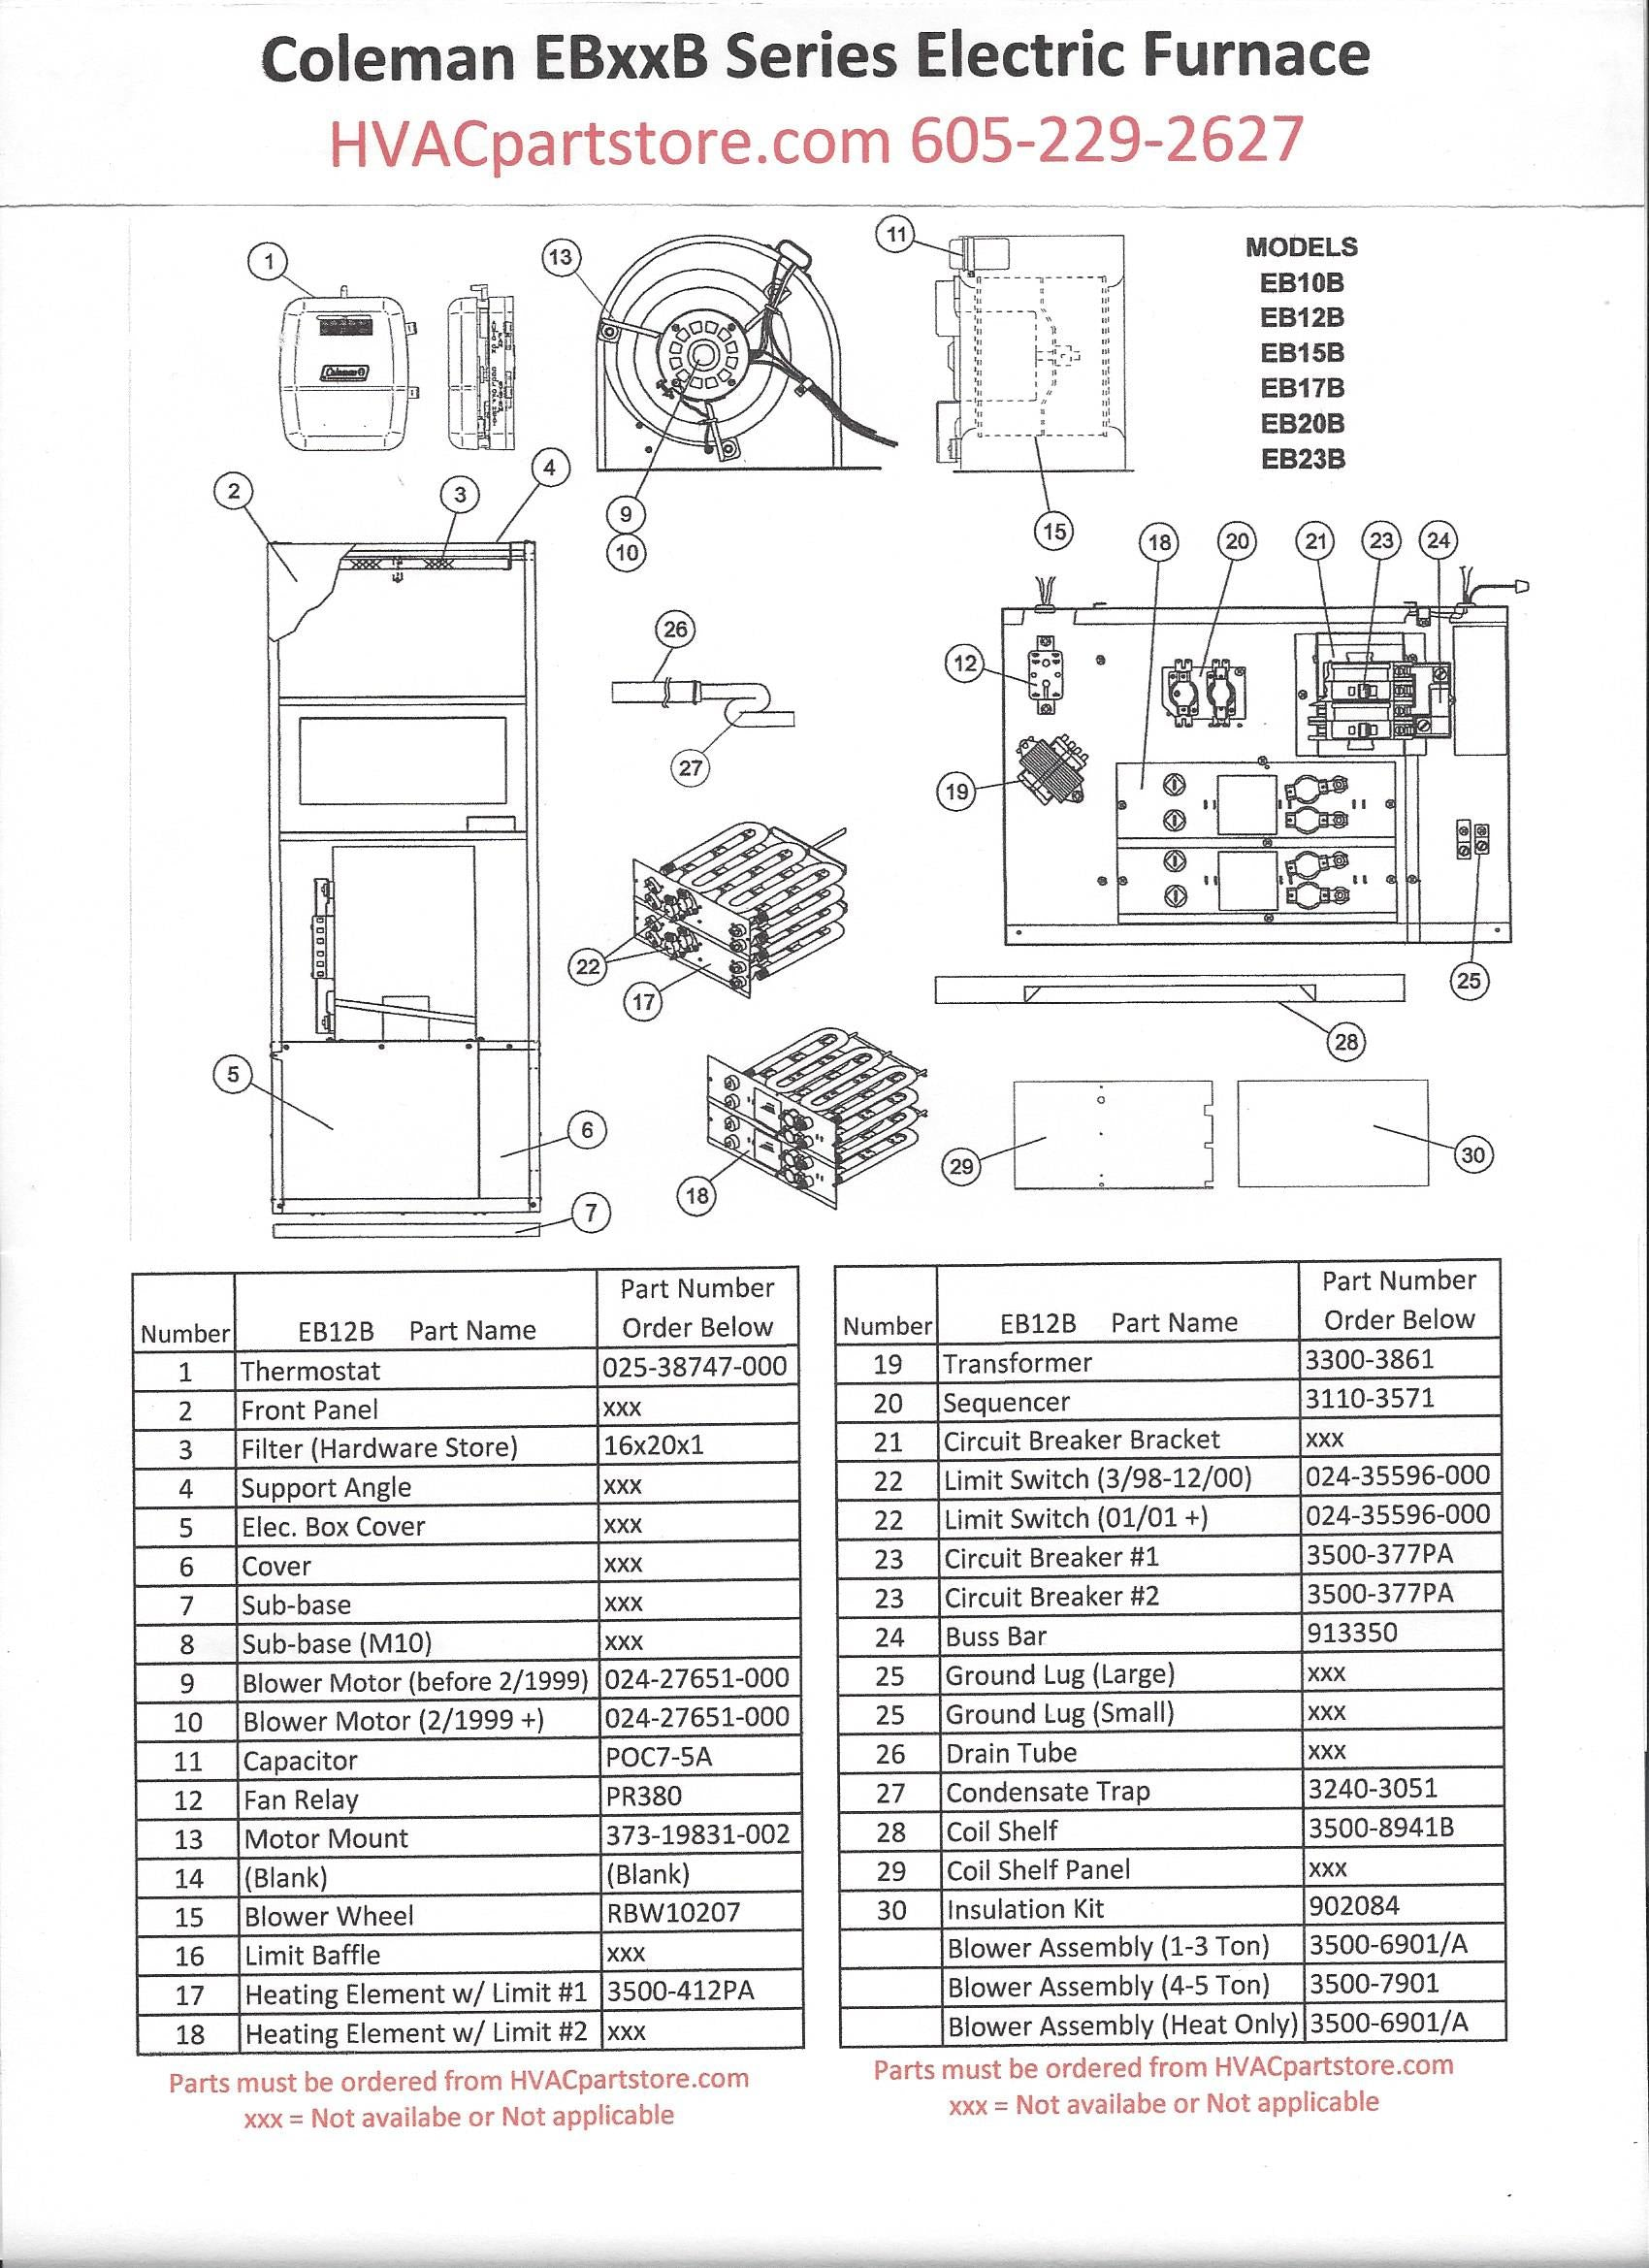 Ebook PDF Generic Electric Furnace Fan Relay Wiring Diagram